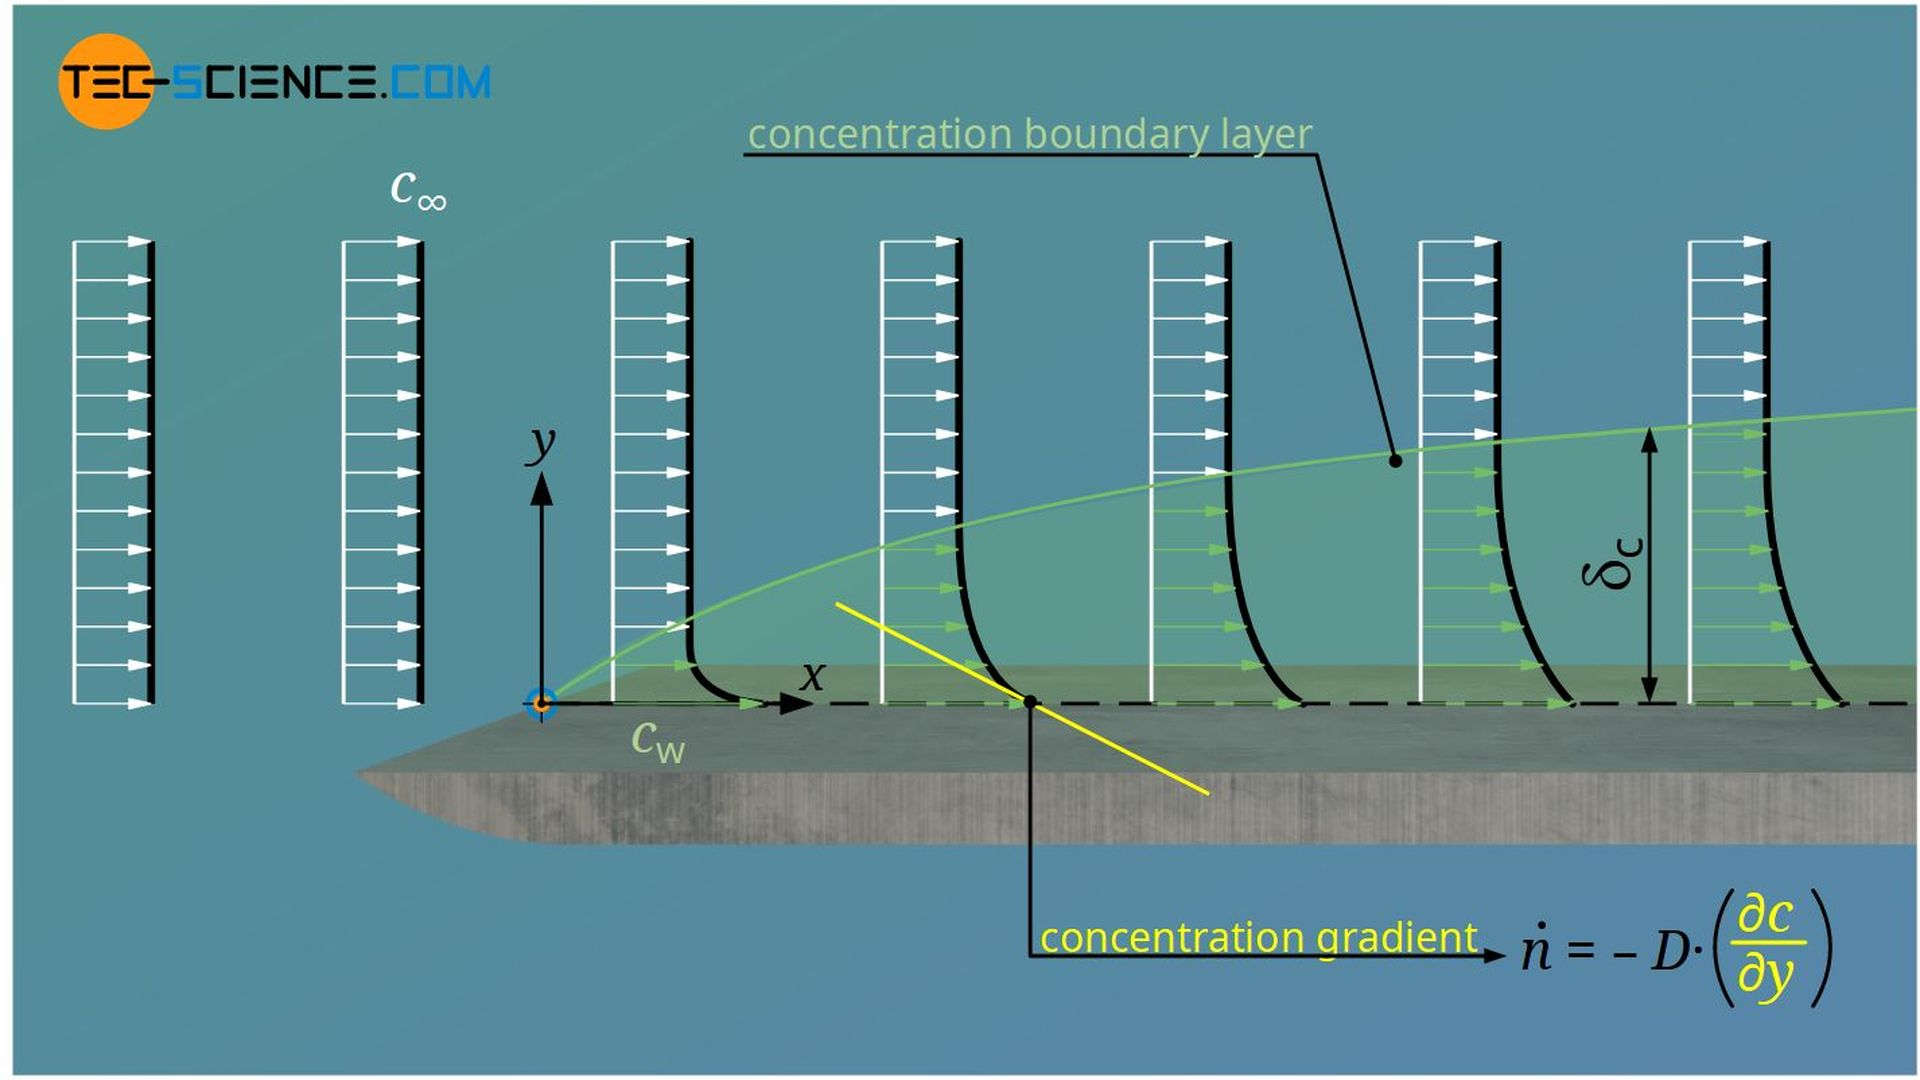 Definition of the concentration boundary layer (substance boundary layer)